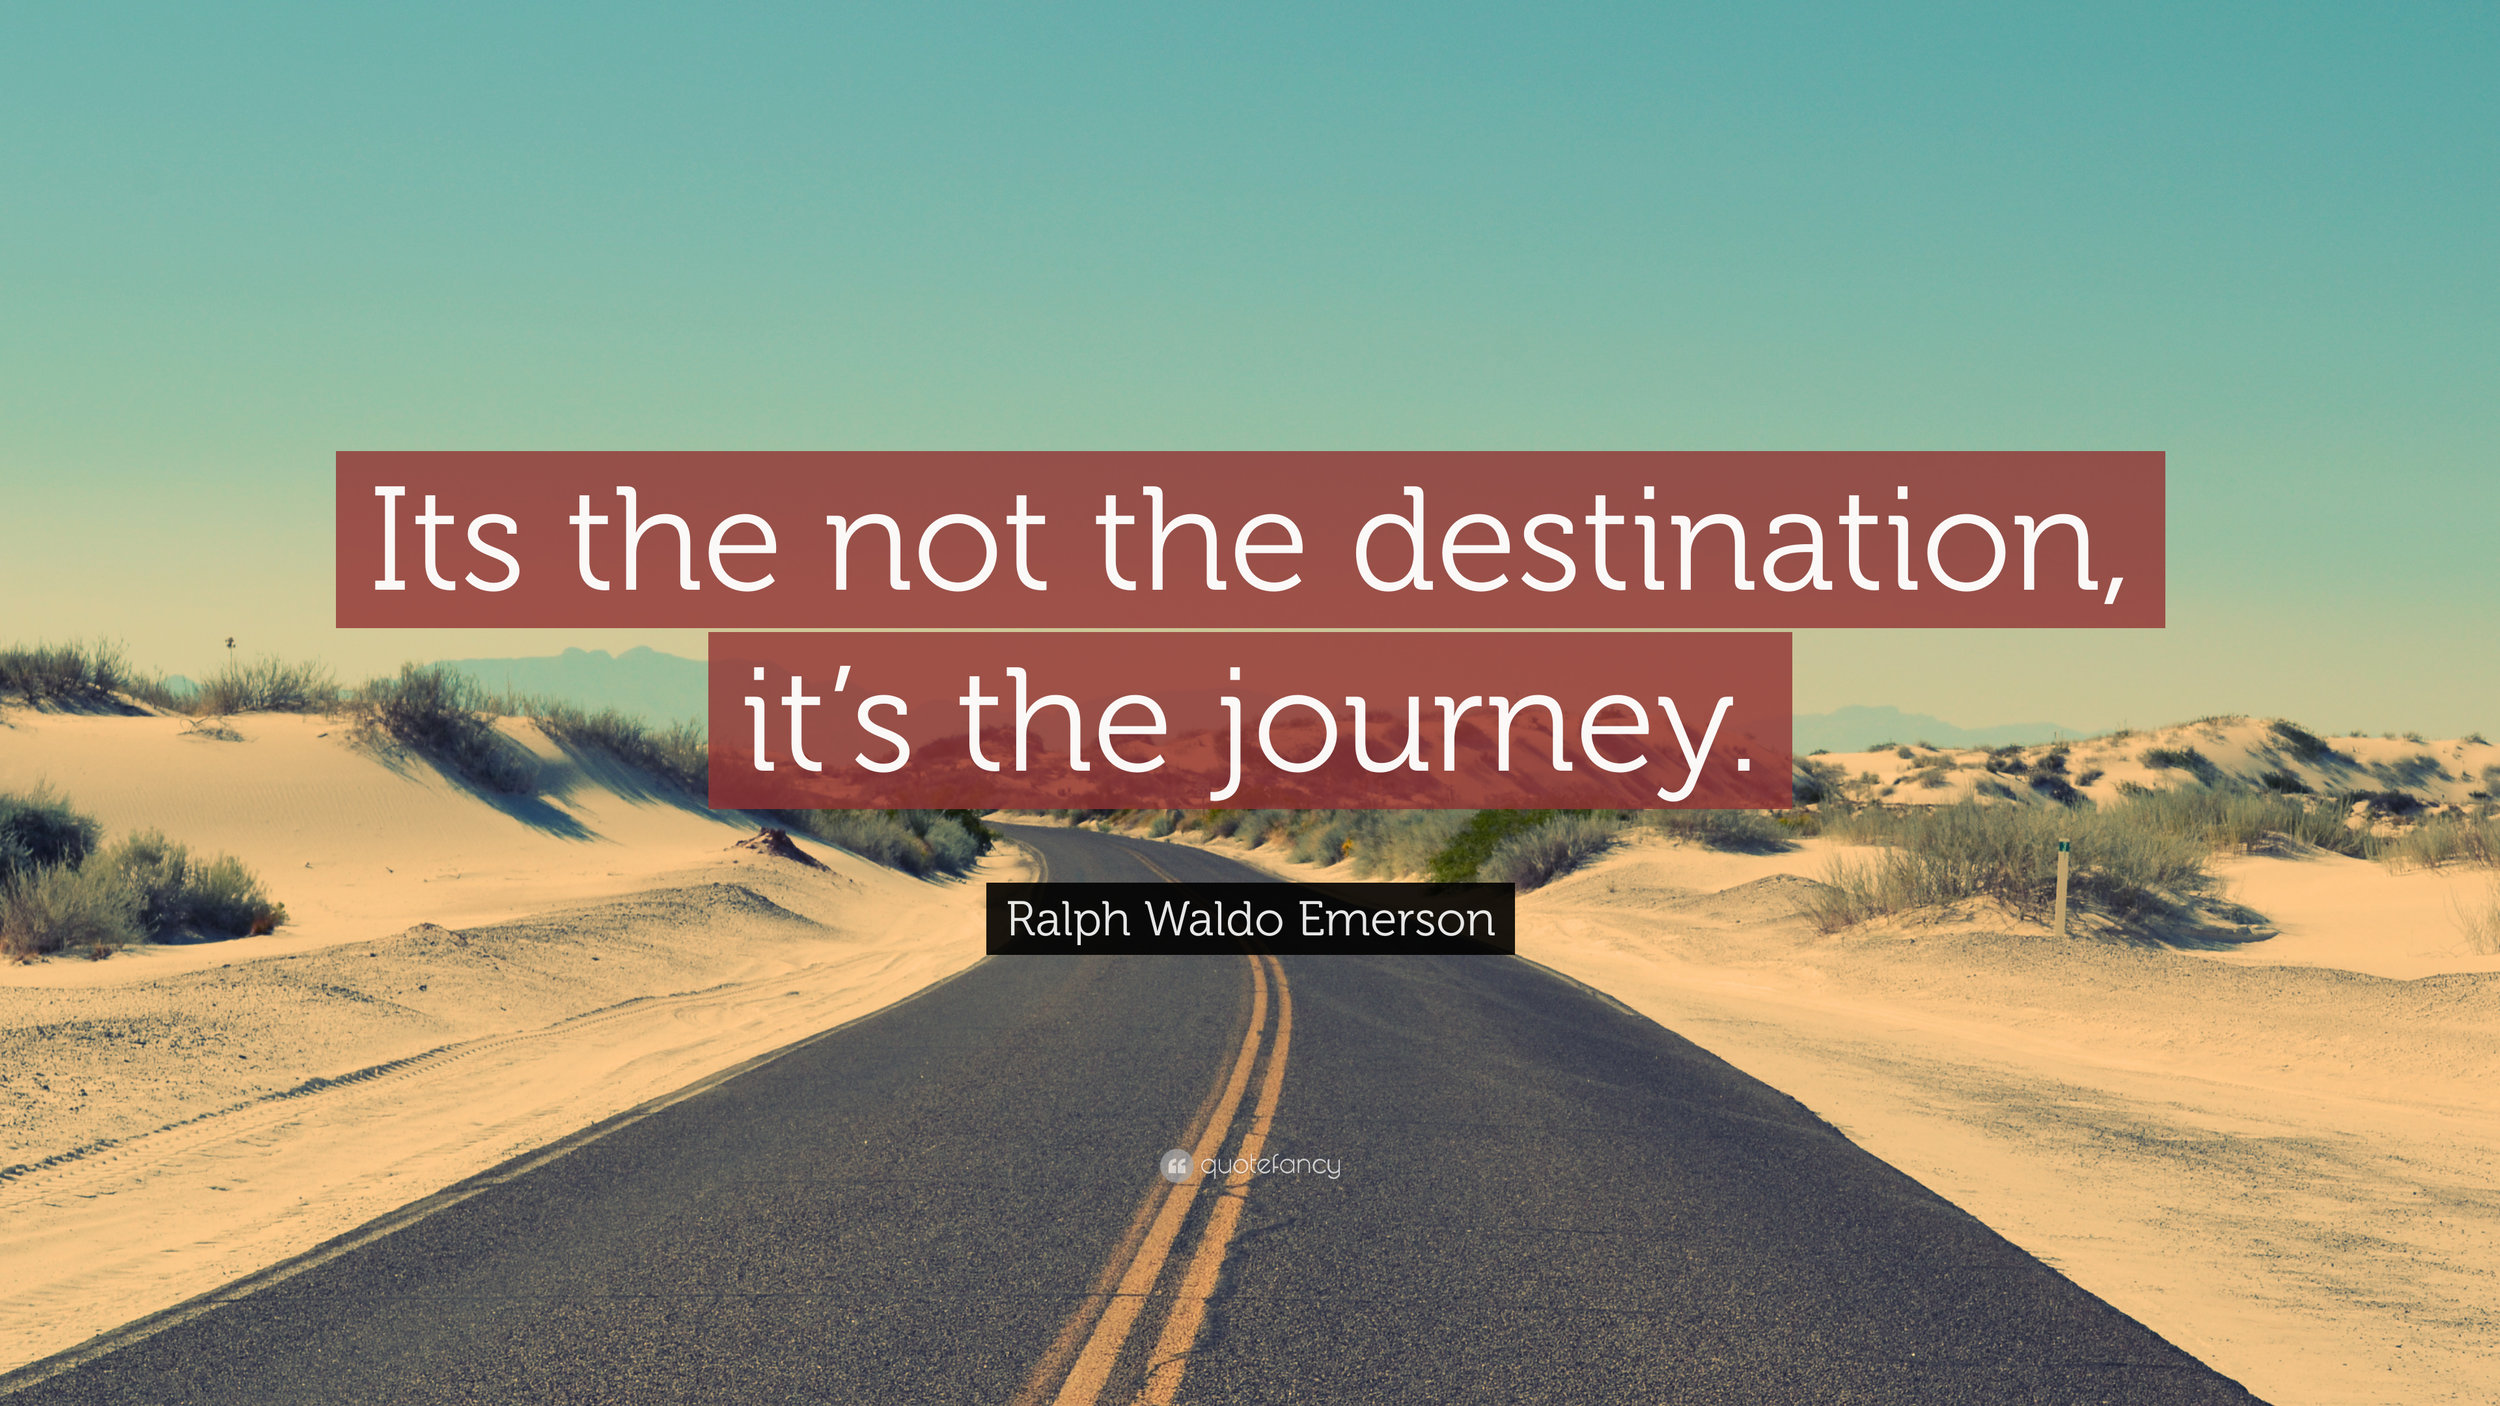 2588623-Ralph-Waldo-Emerson-Quote-Its-the-not-the-destination-it-s-the.jpg